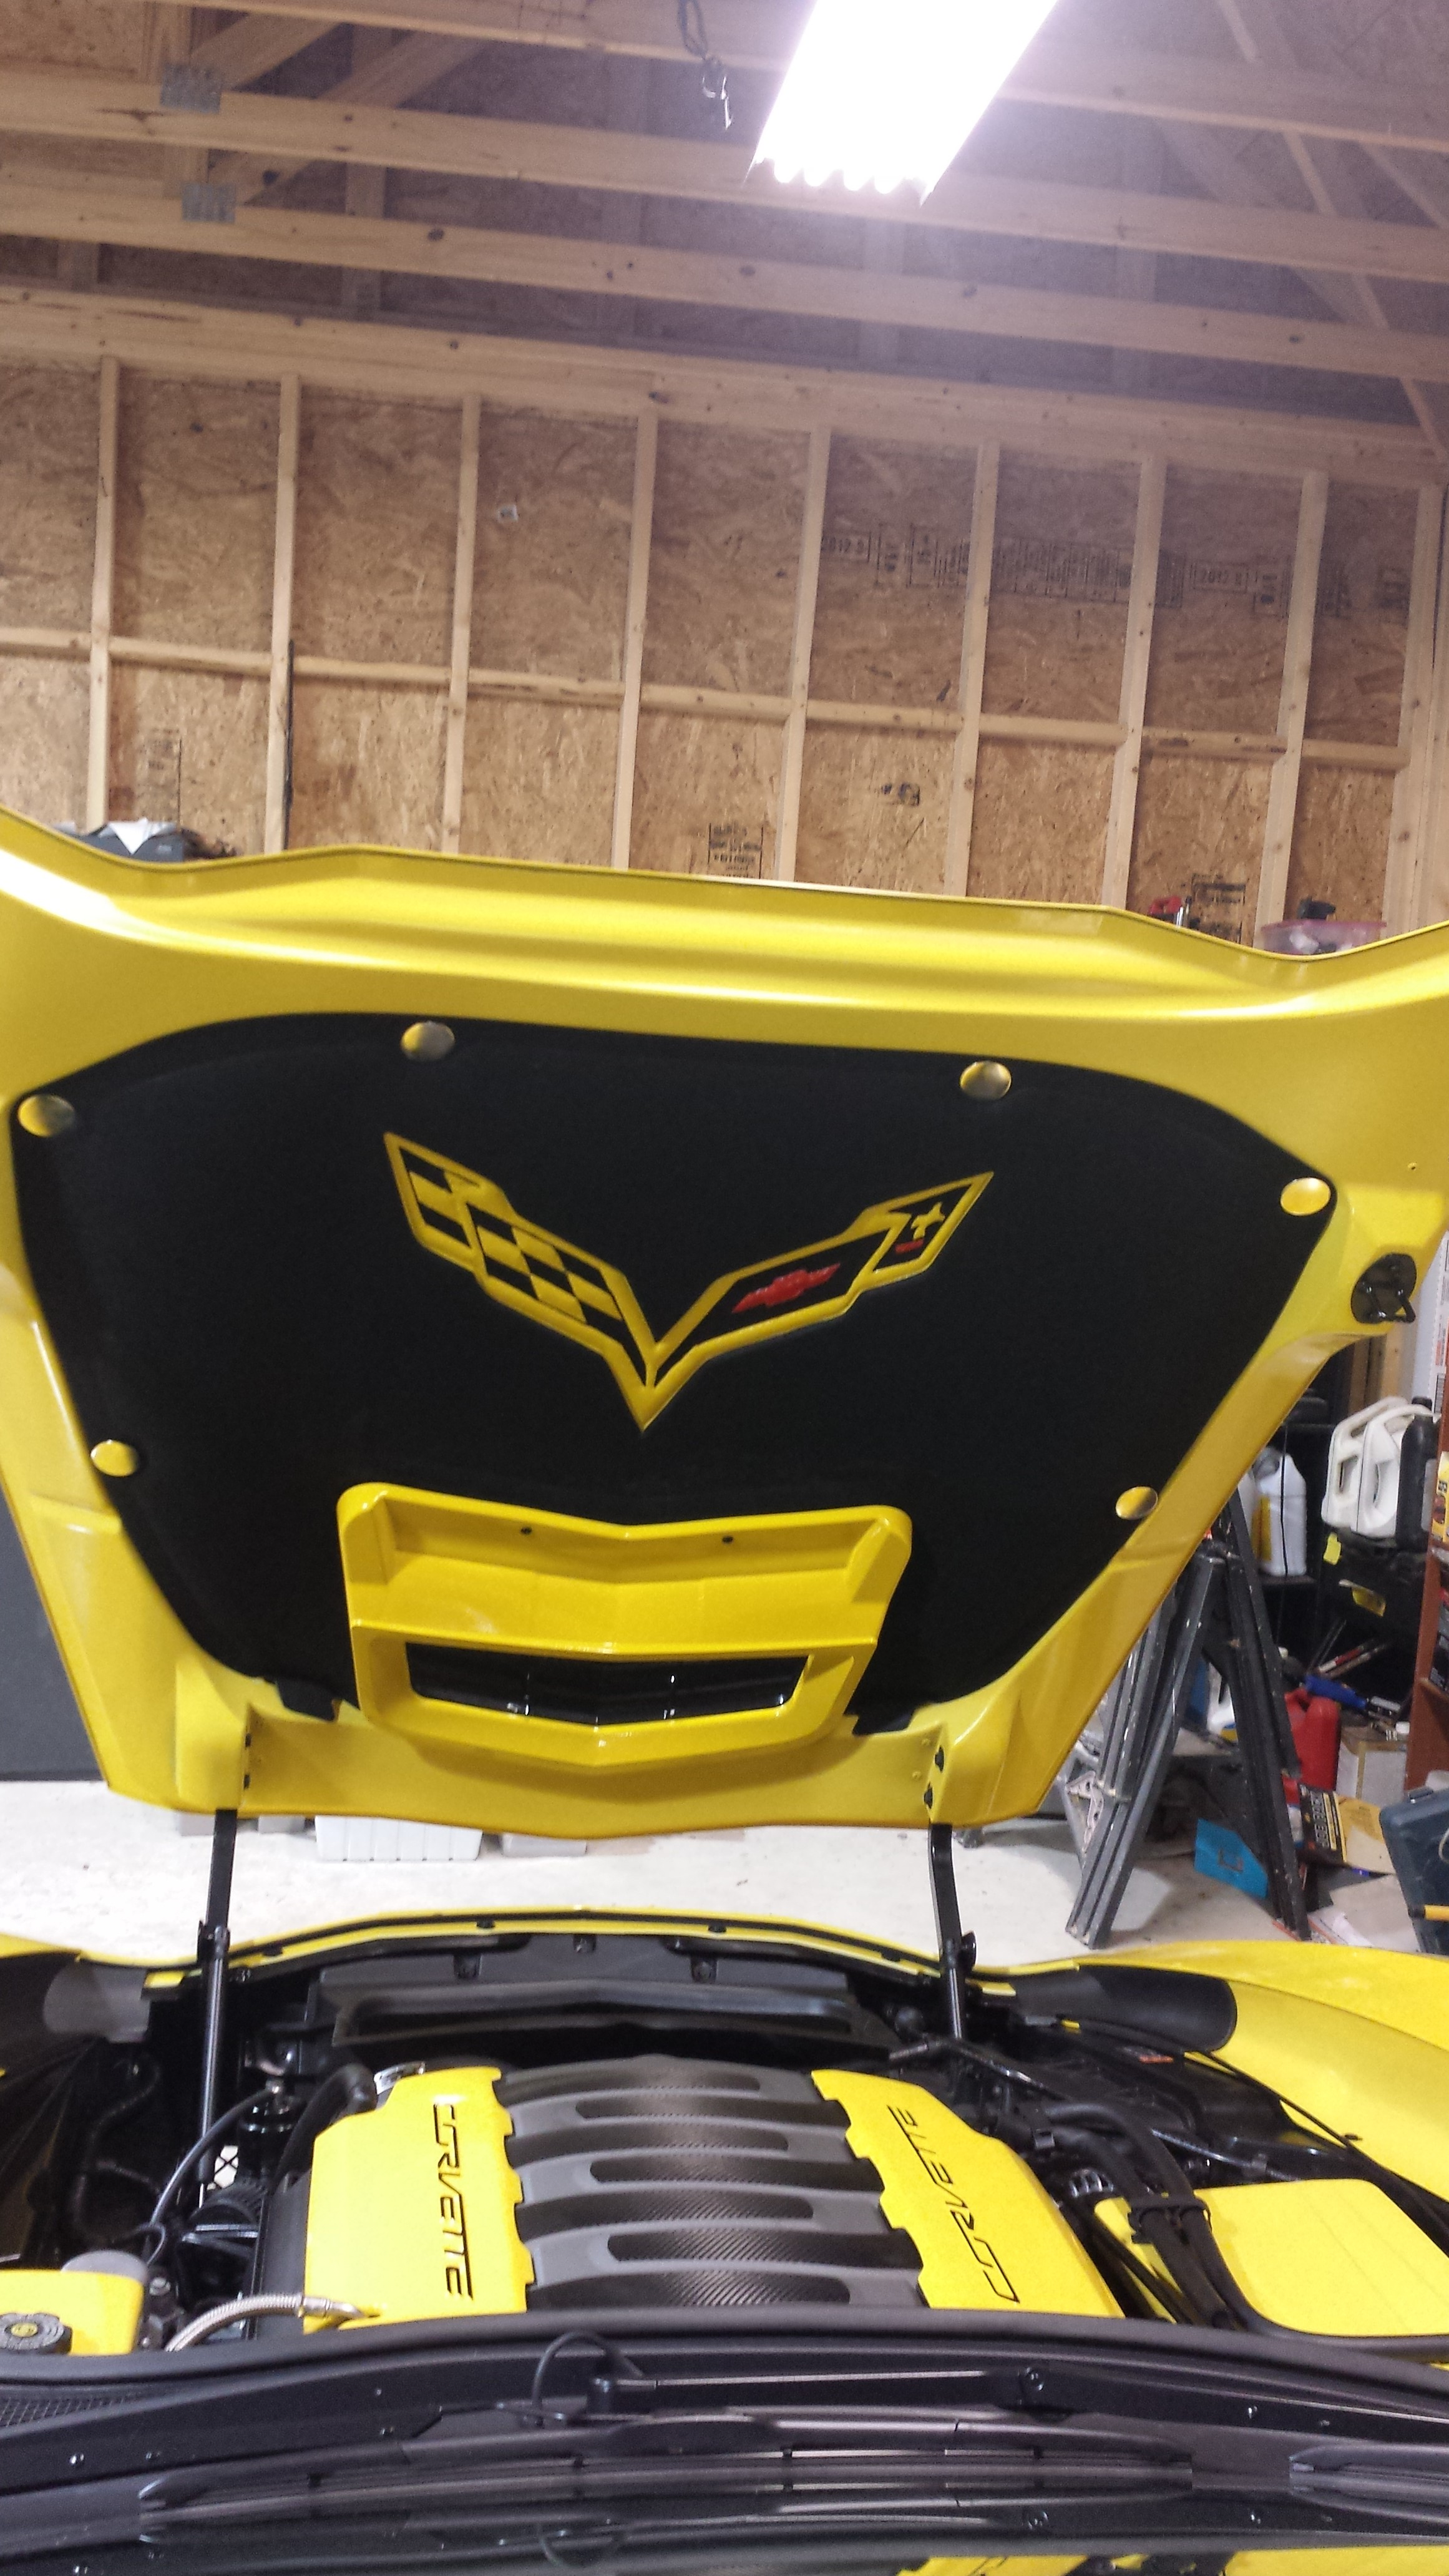 Matt3310s My Stingray Build Thread C7 Corvette Painted Fuse Box Cover Name Under Hood Vy Views 945 Size 153 Mb